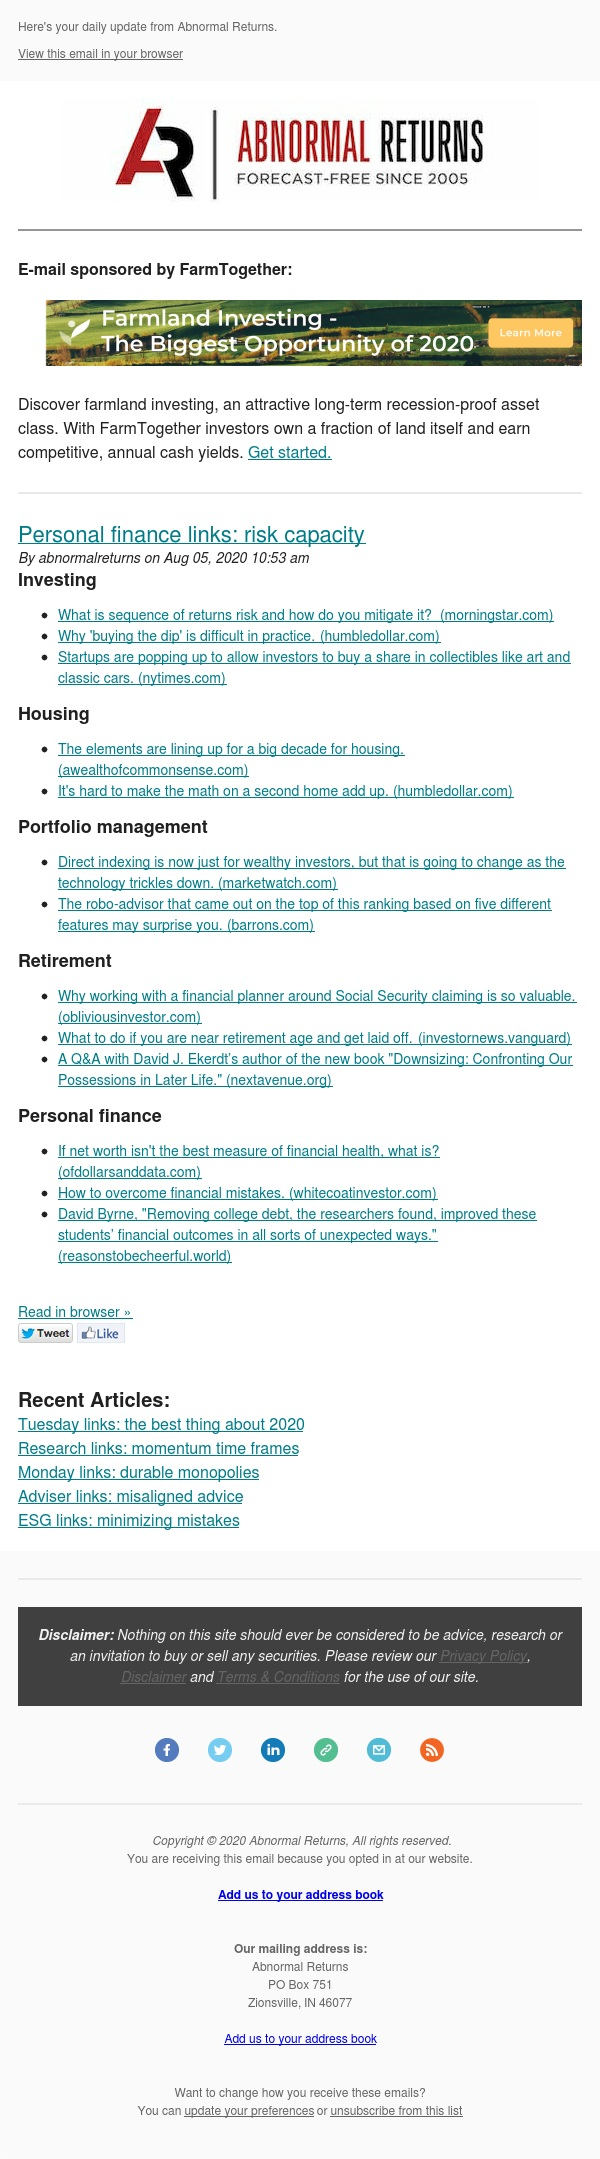 📈📉Posts from Abnormal Returns for 08/05/2020